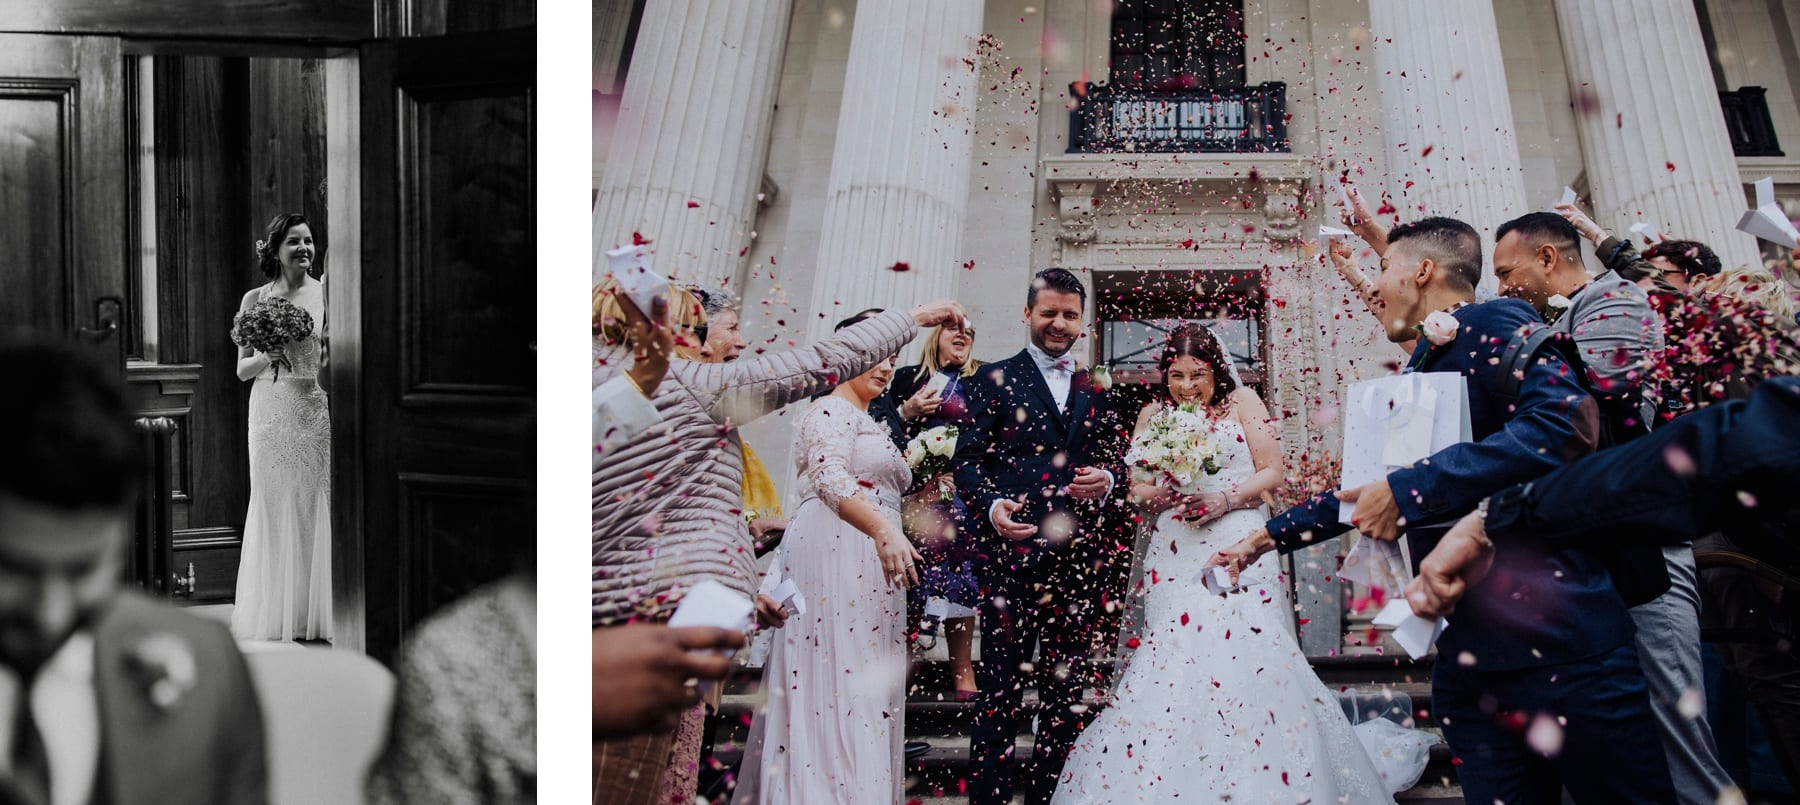 Photos of two different Marylebone Town Hall weddings